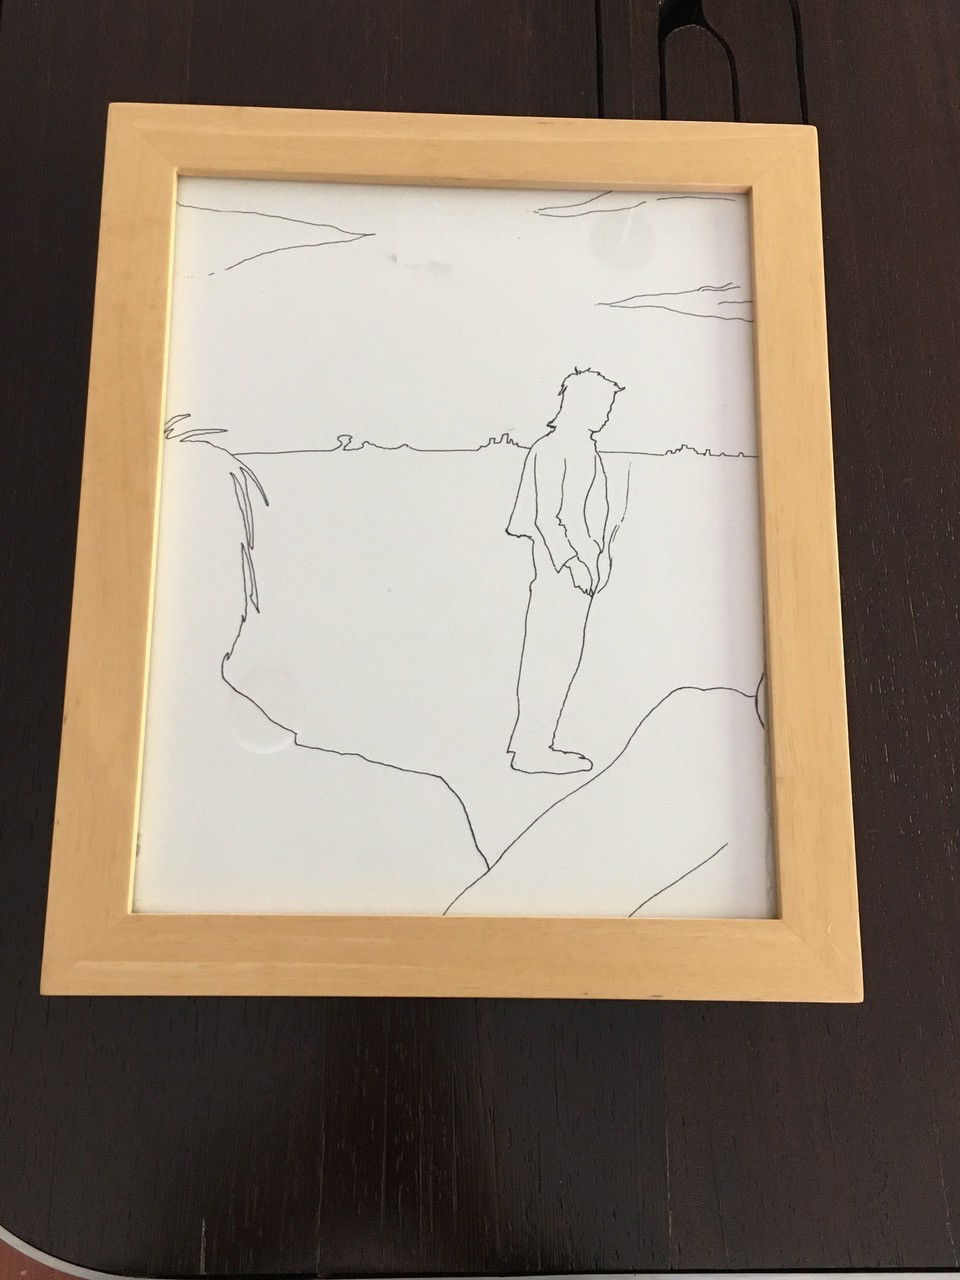 Doug Aitken's drawing, created when he was a teen.